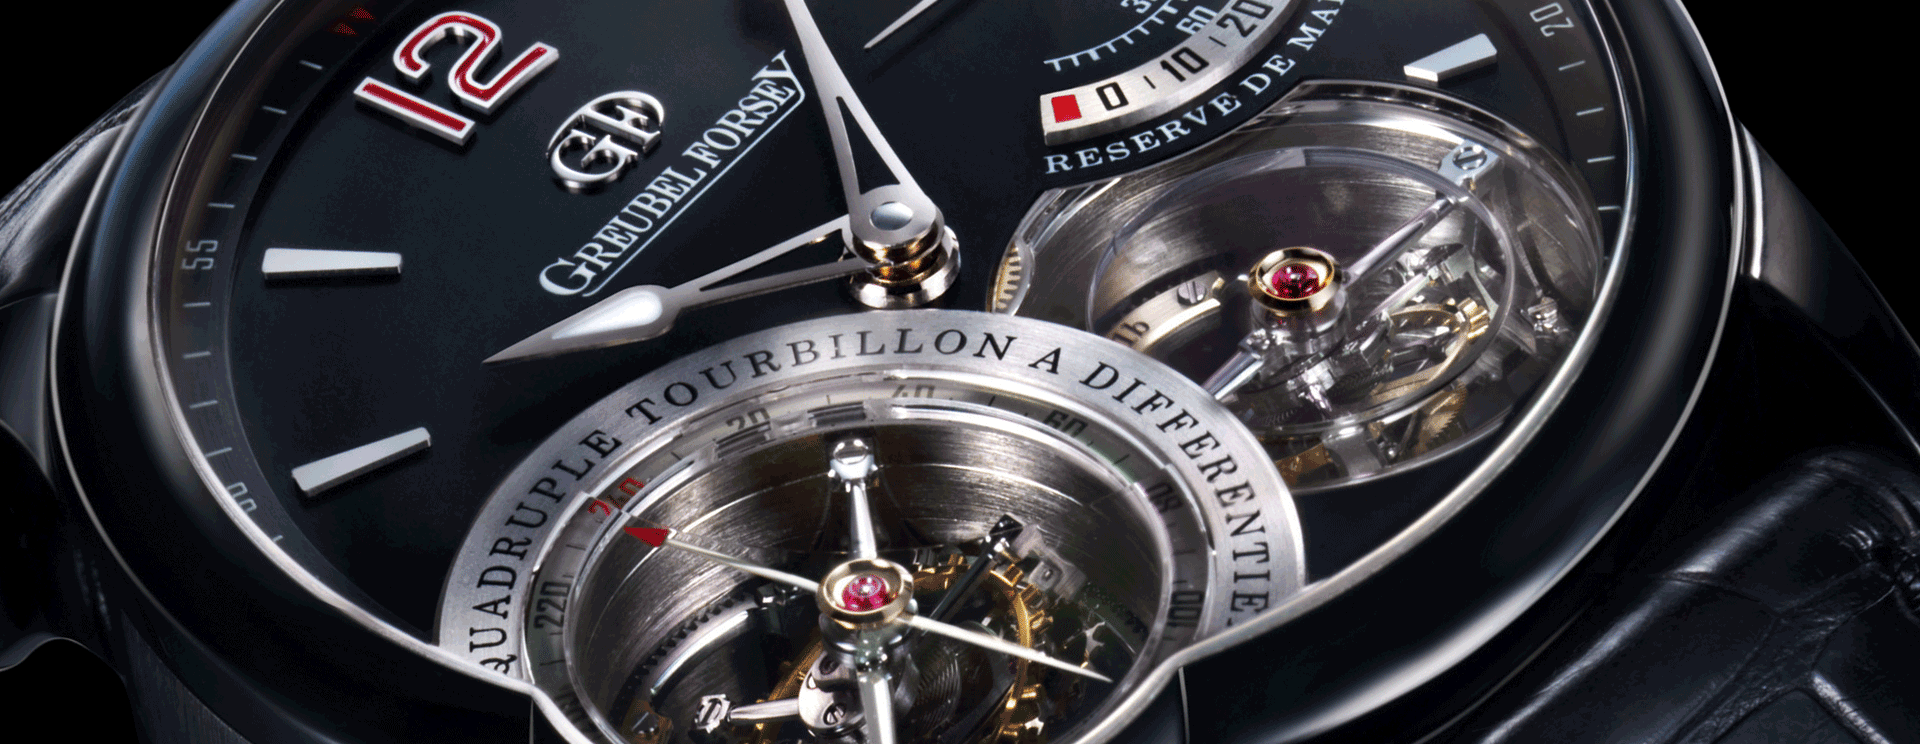 UNIQUE QUADRUPLE TOURBILLON